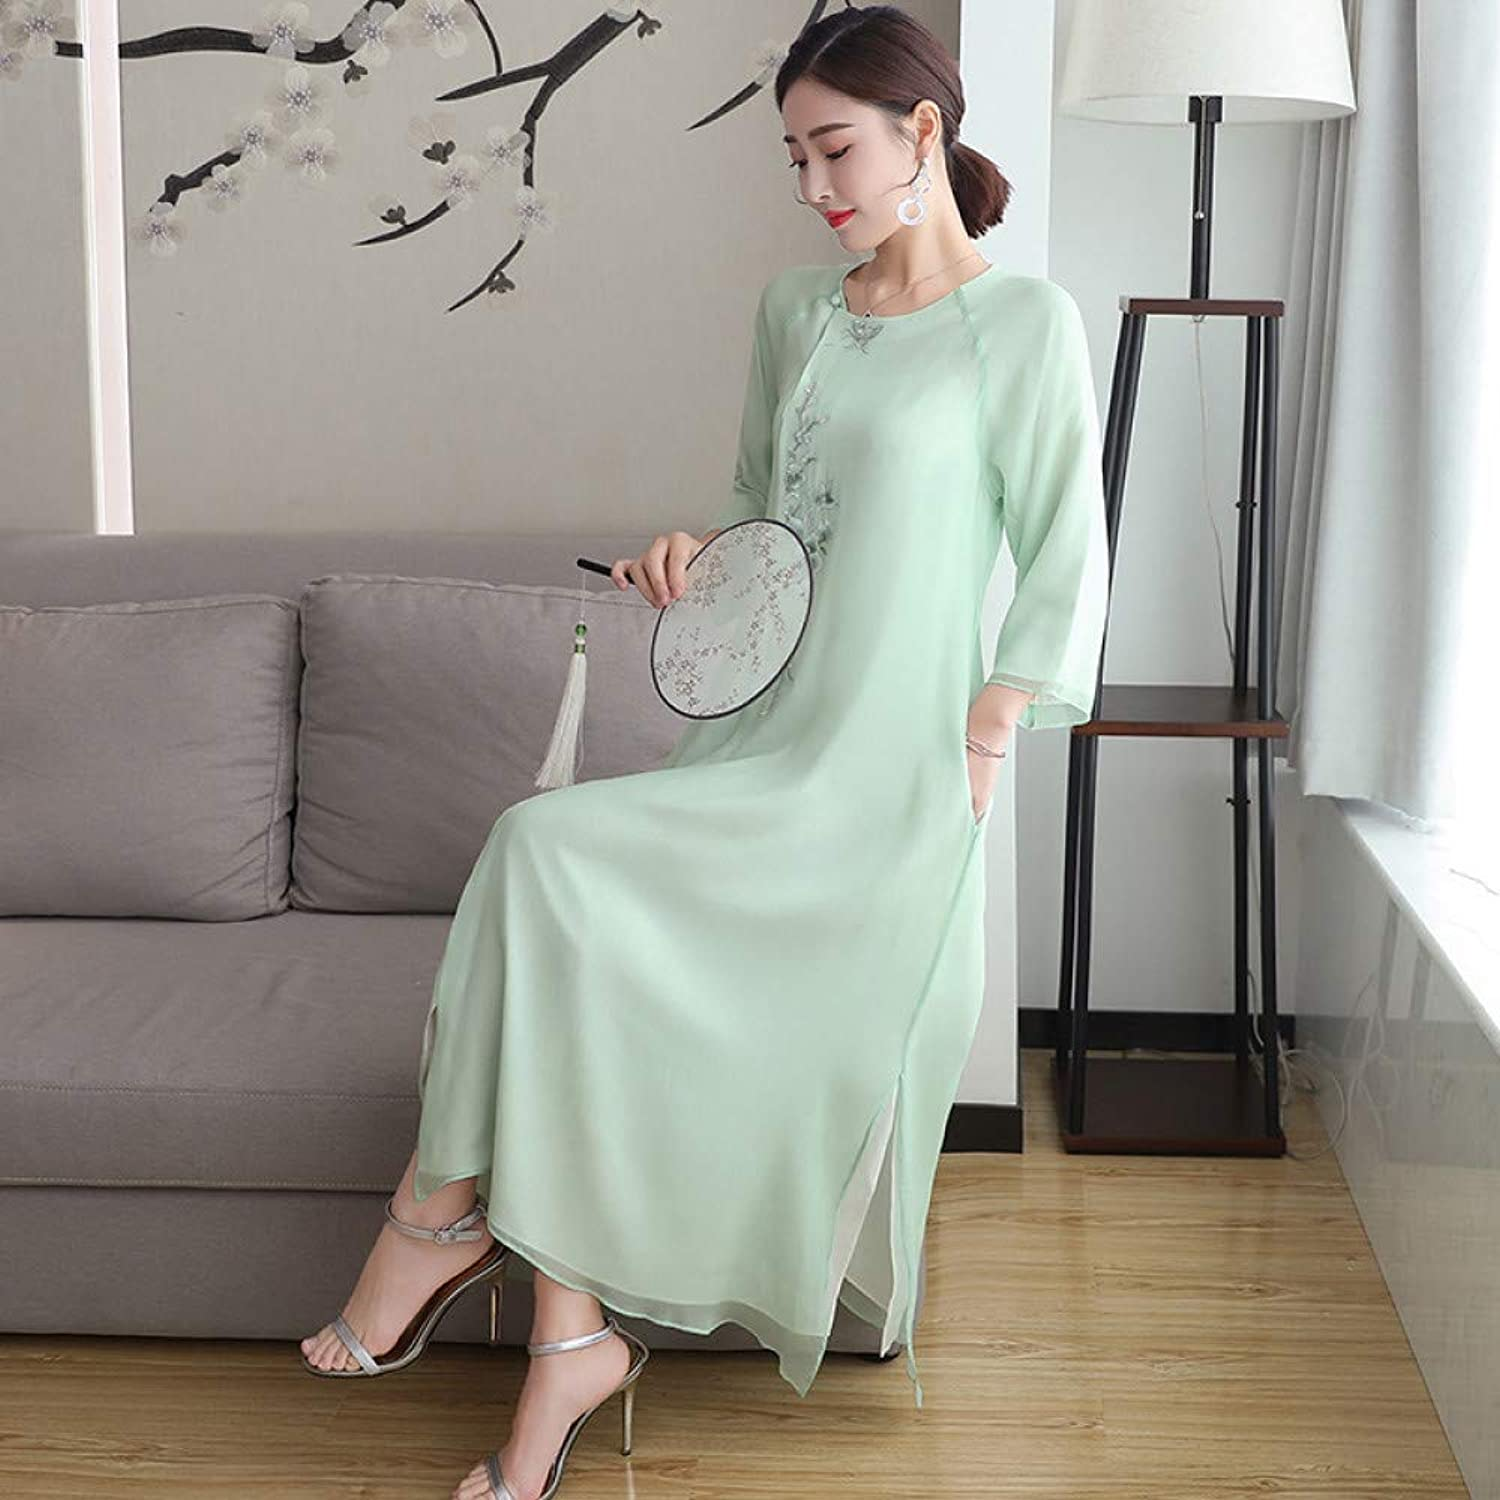 Cxlyq Dresses Embroidered Loose Tea Service Round Neck Cropped Sleeves Long Section Dress